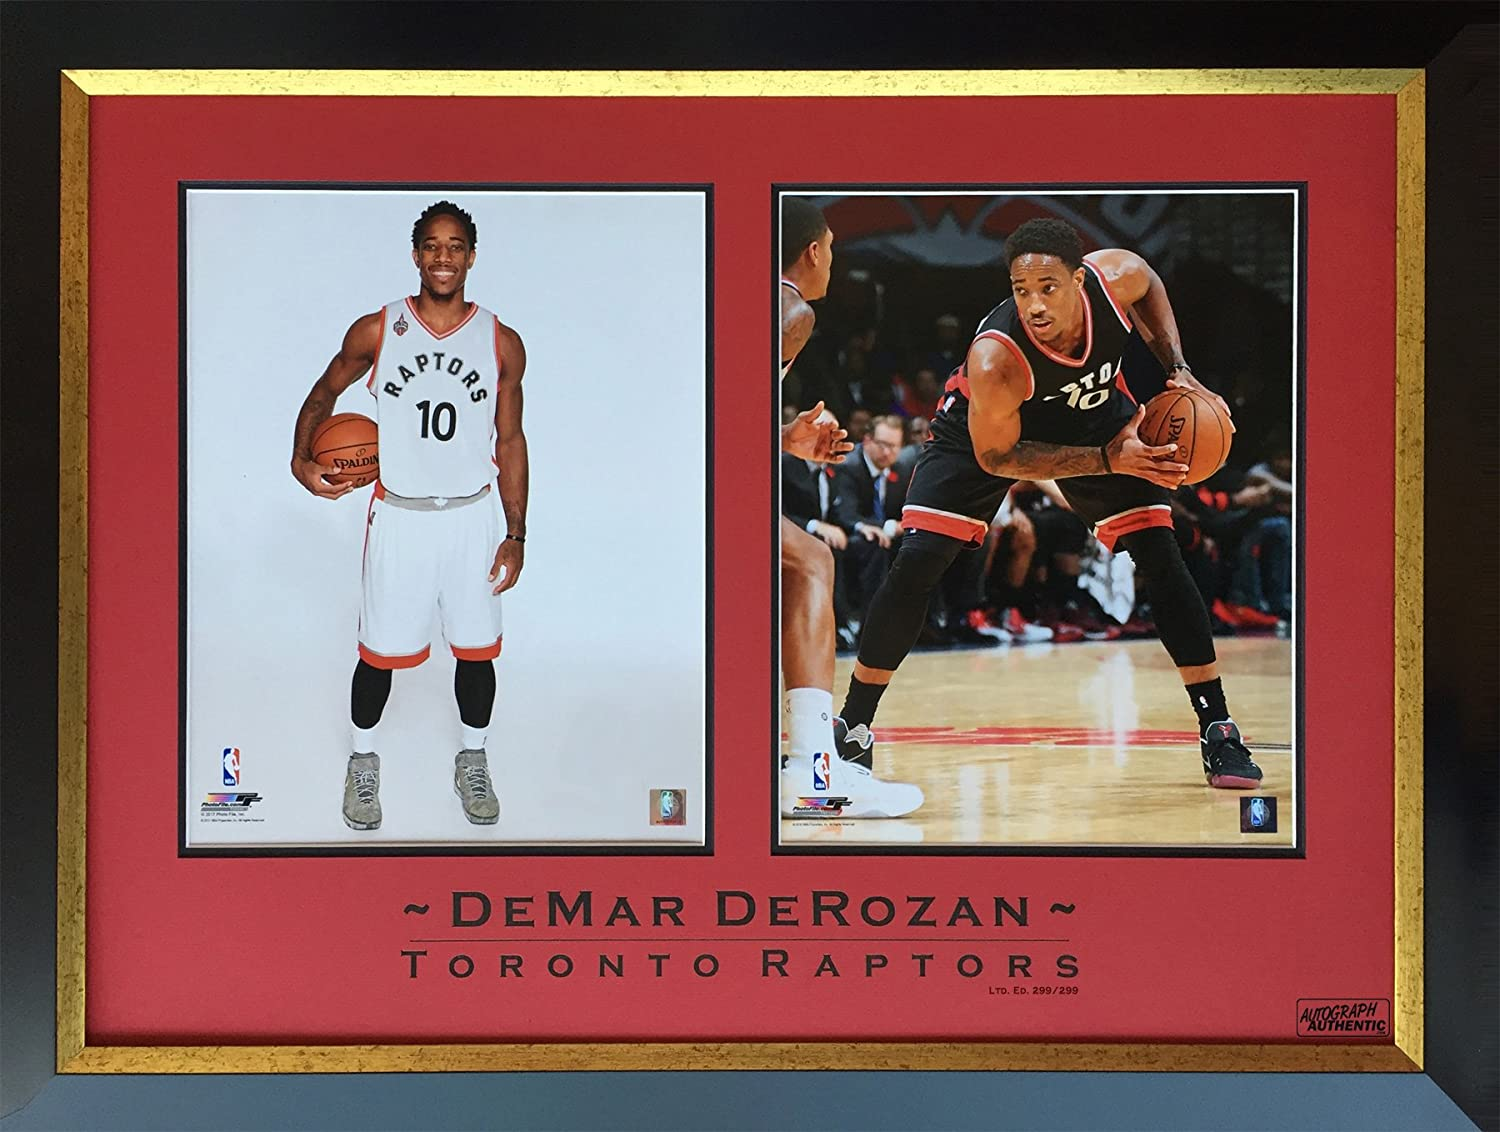 DeMar DeRozan Limited Edition 299 of 299 Framed Photos - Toronto Raptors at Amazon s  Sports Collectibles Store 76498a9d3